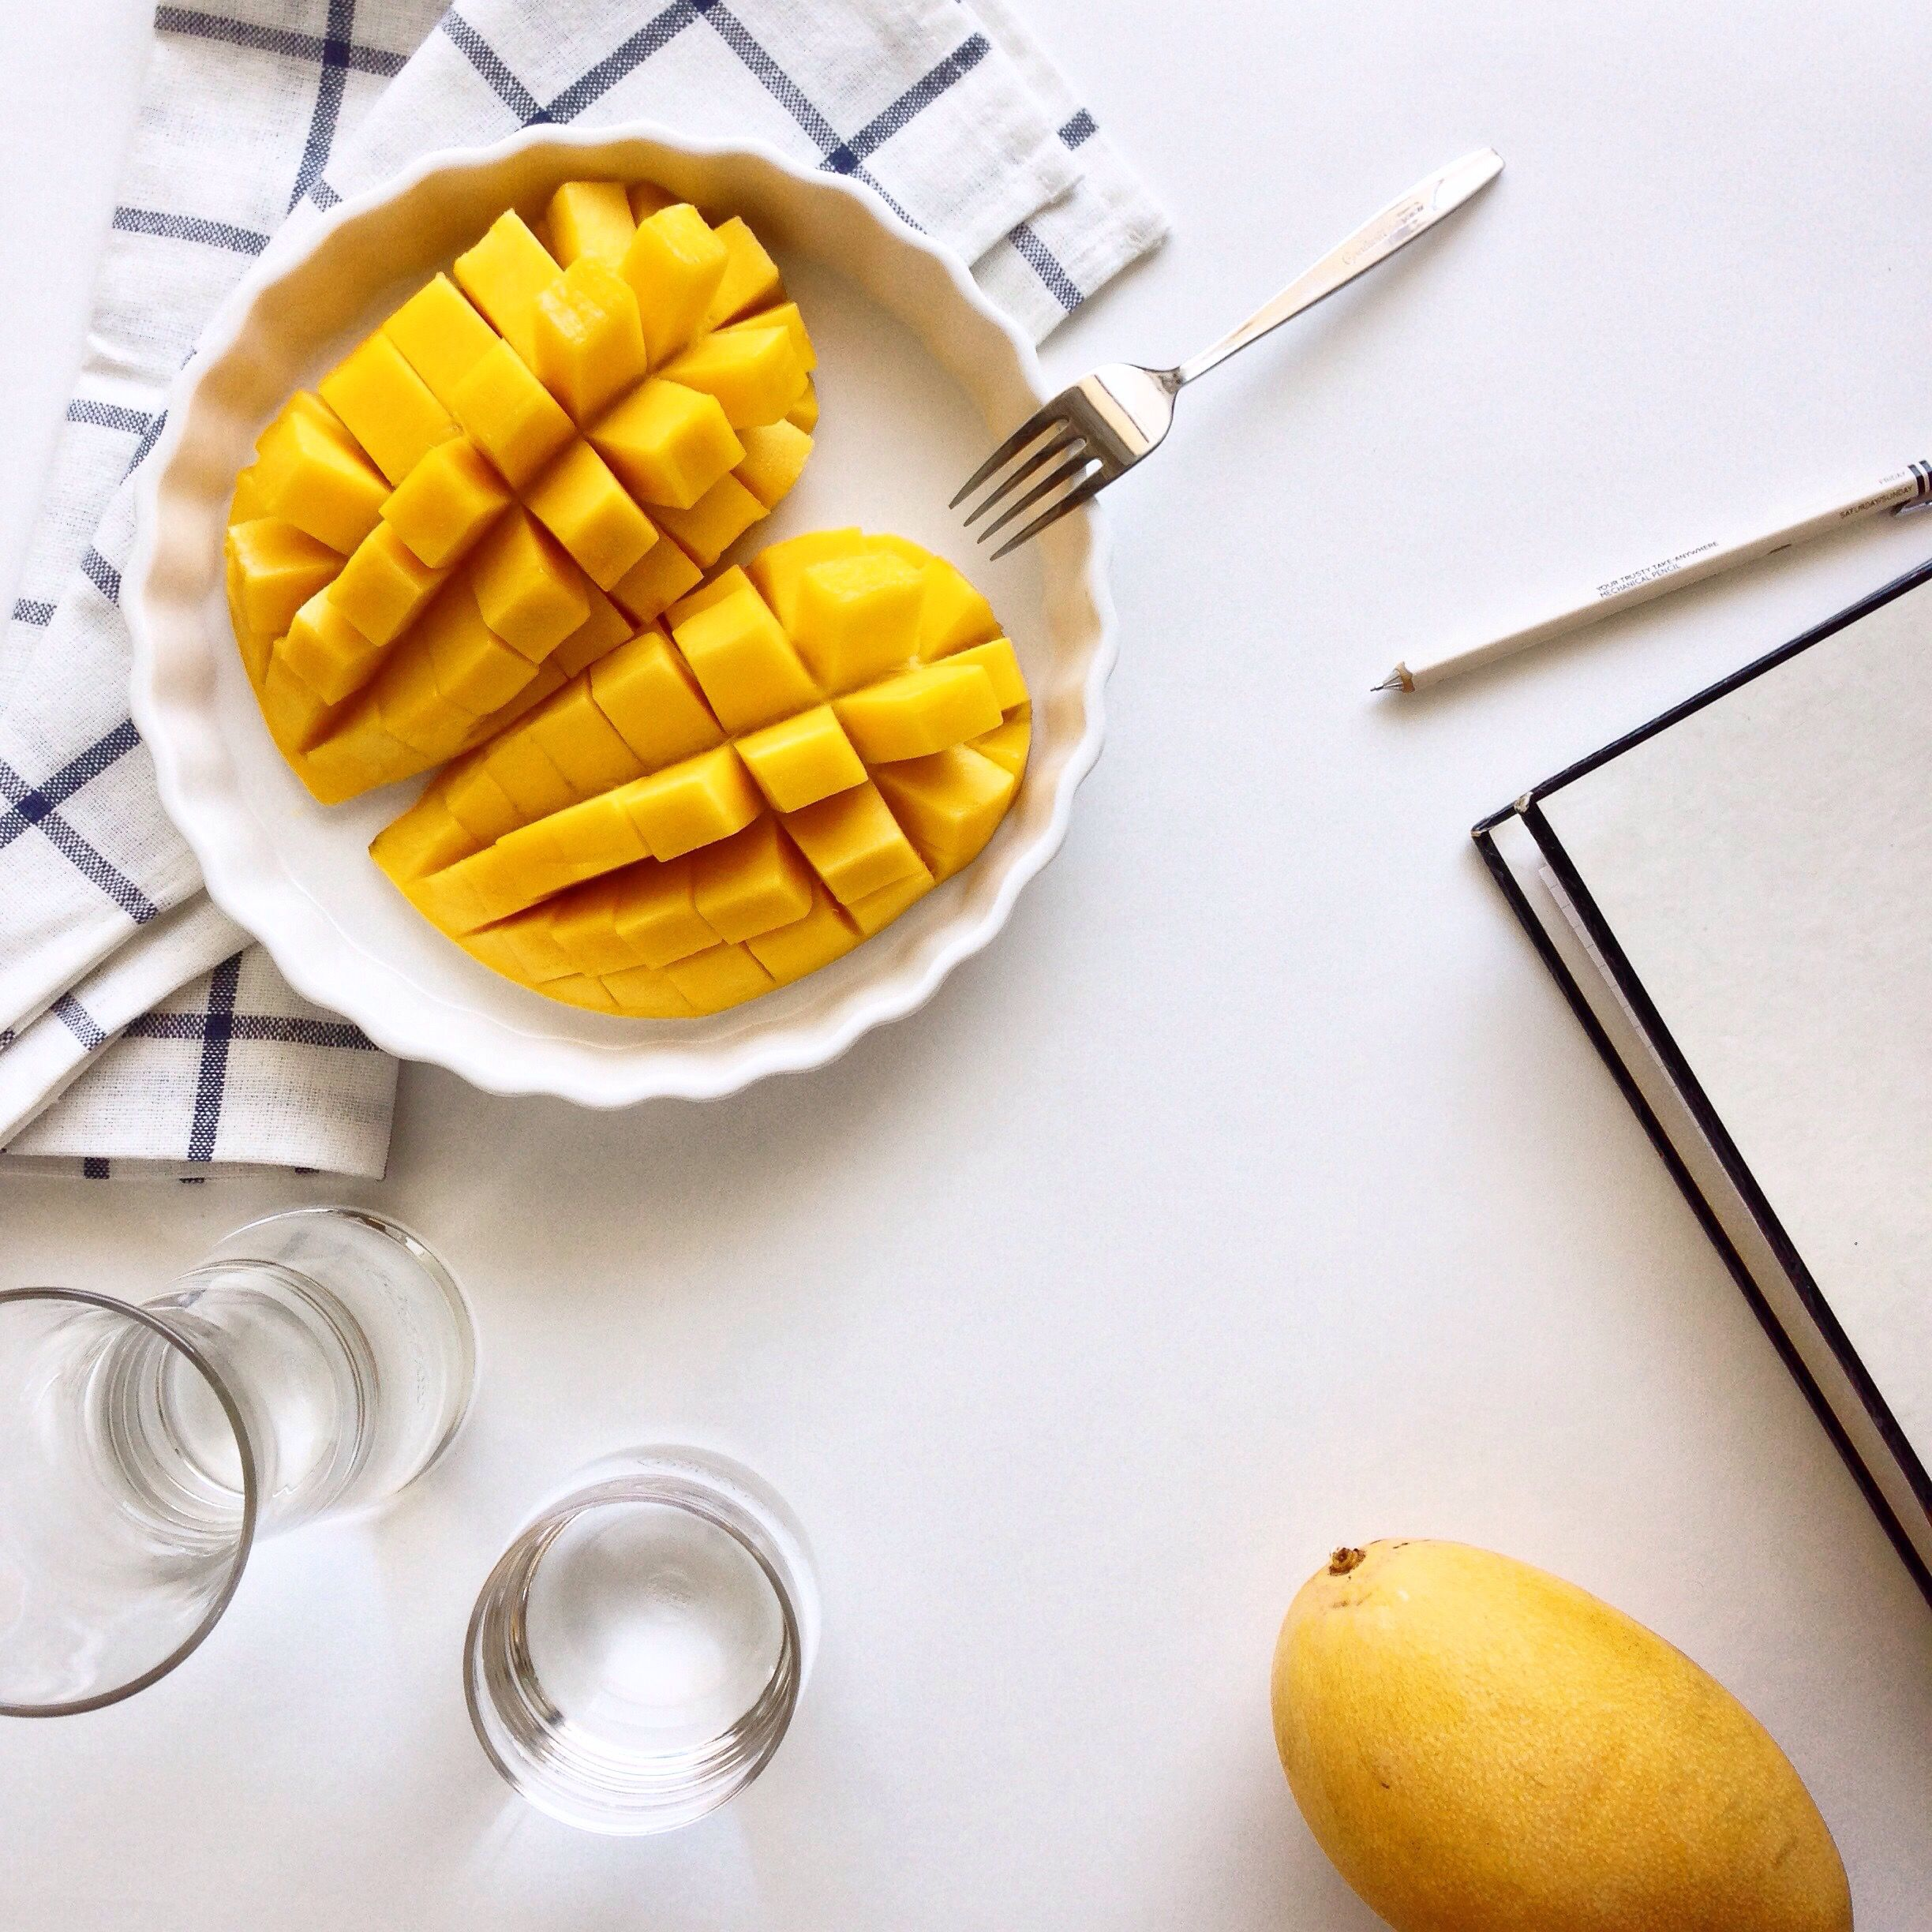 How to cut and prepare fresh mango great tasting mango recipes and tips for storage and preparation ccuart Image collections